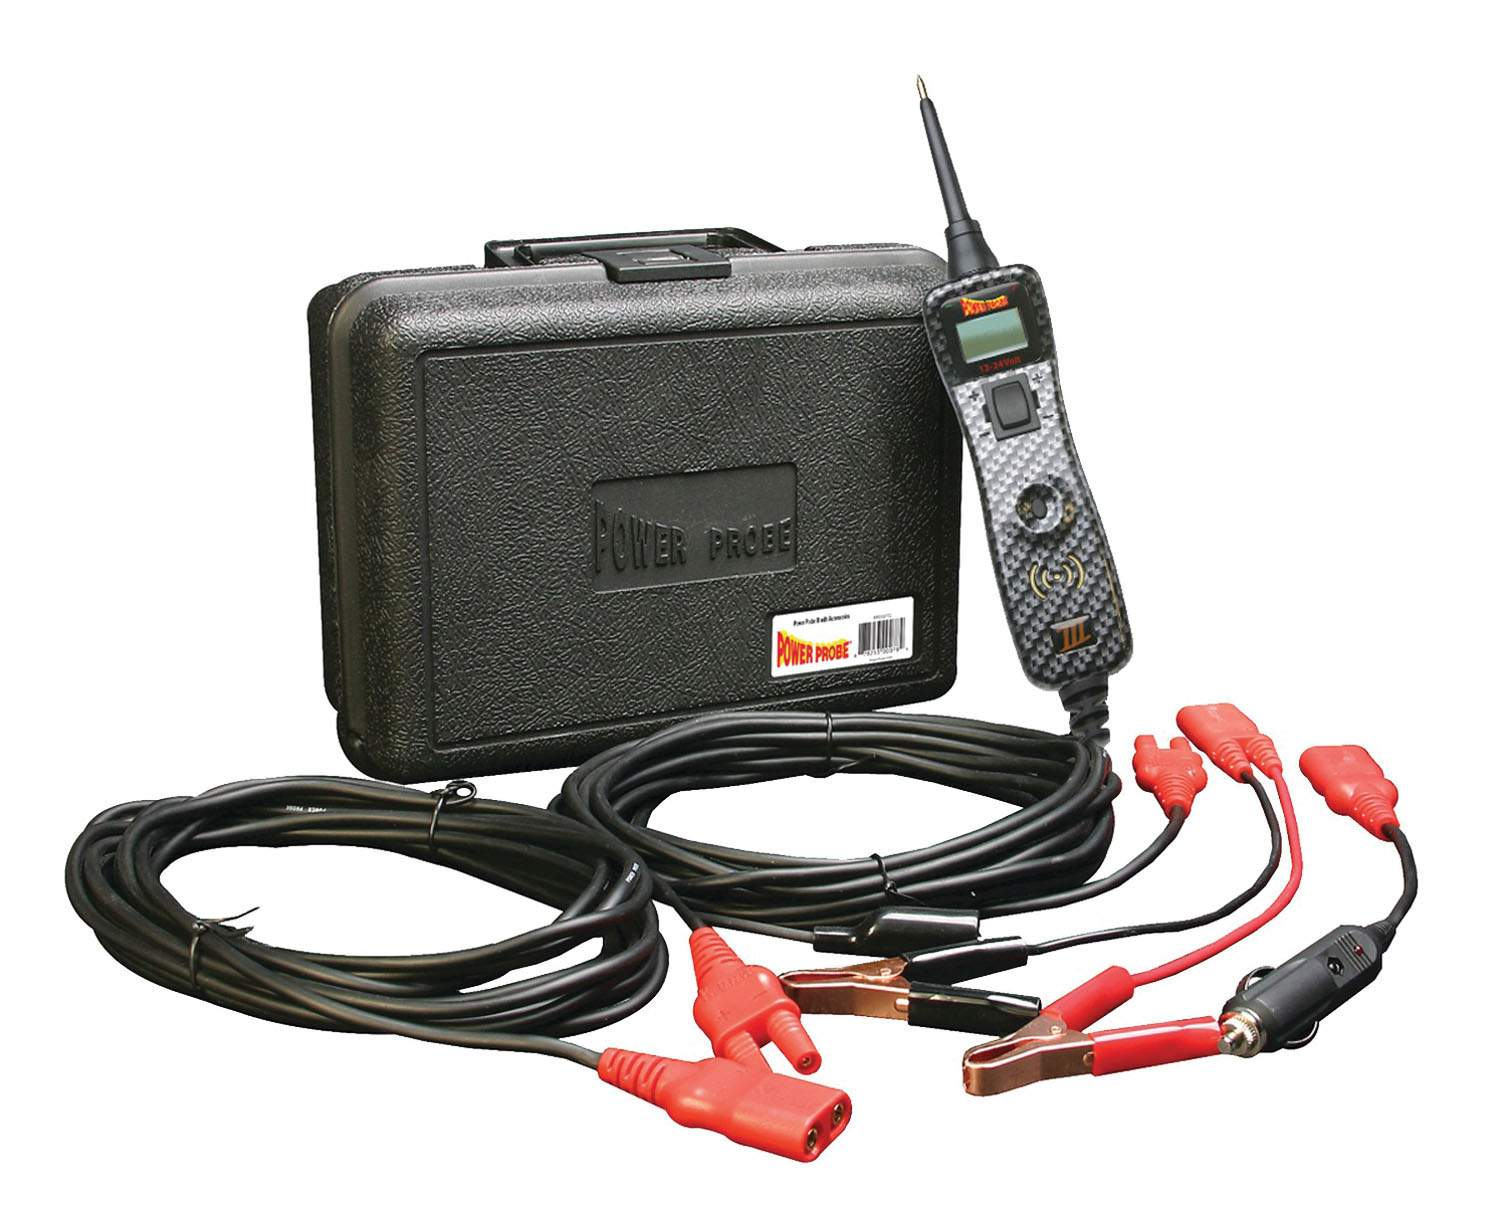 Power Probe III with Carbon Fibre Design PPRPP319CARB | Tool Discounter